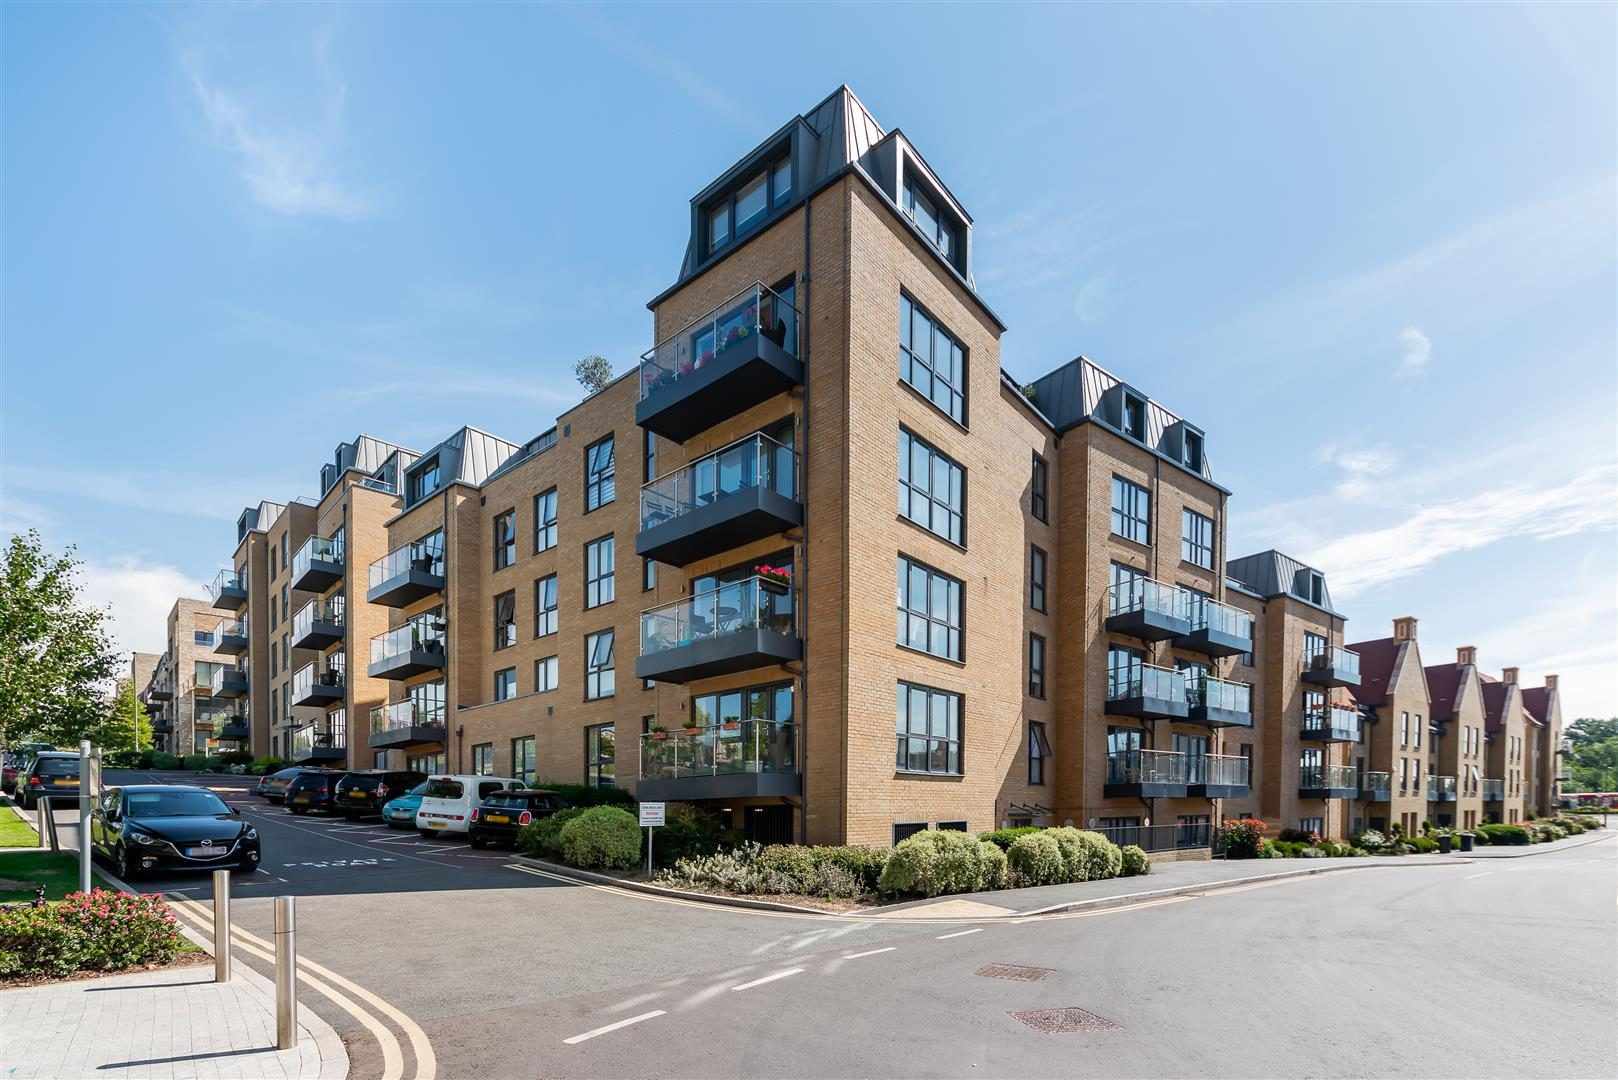 Flat 10, Sensa Apartments, 16 Royal Engineers Way